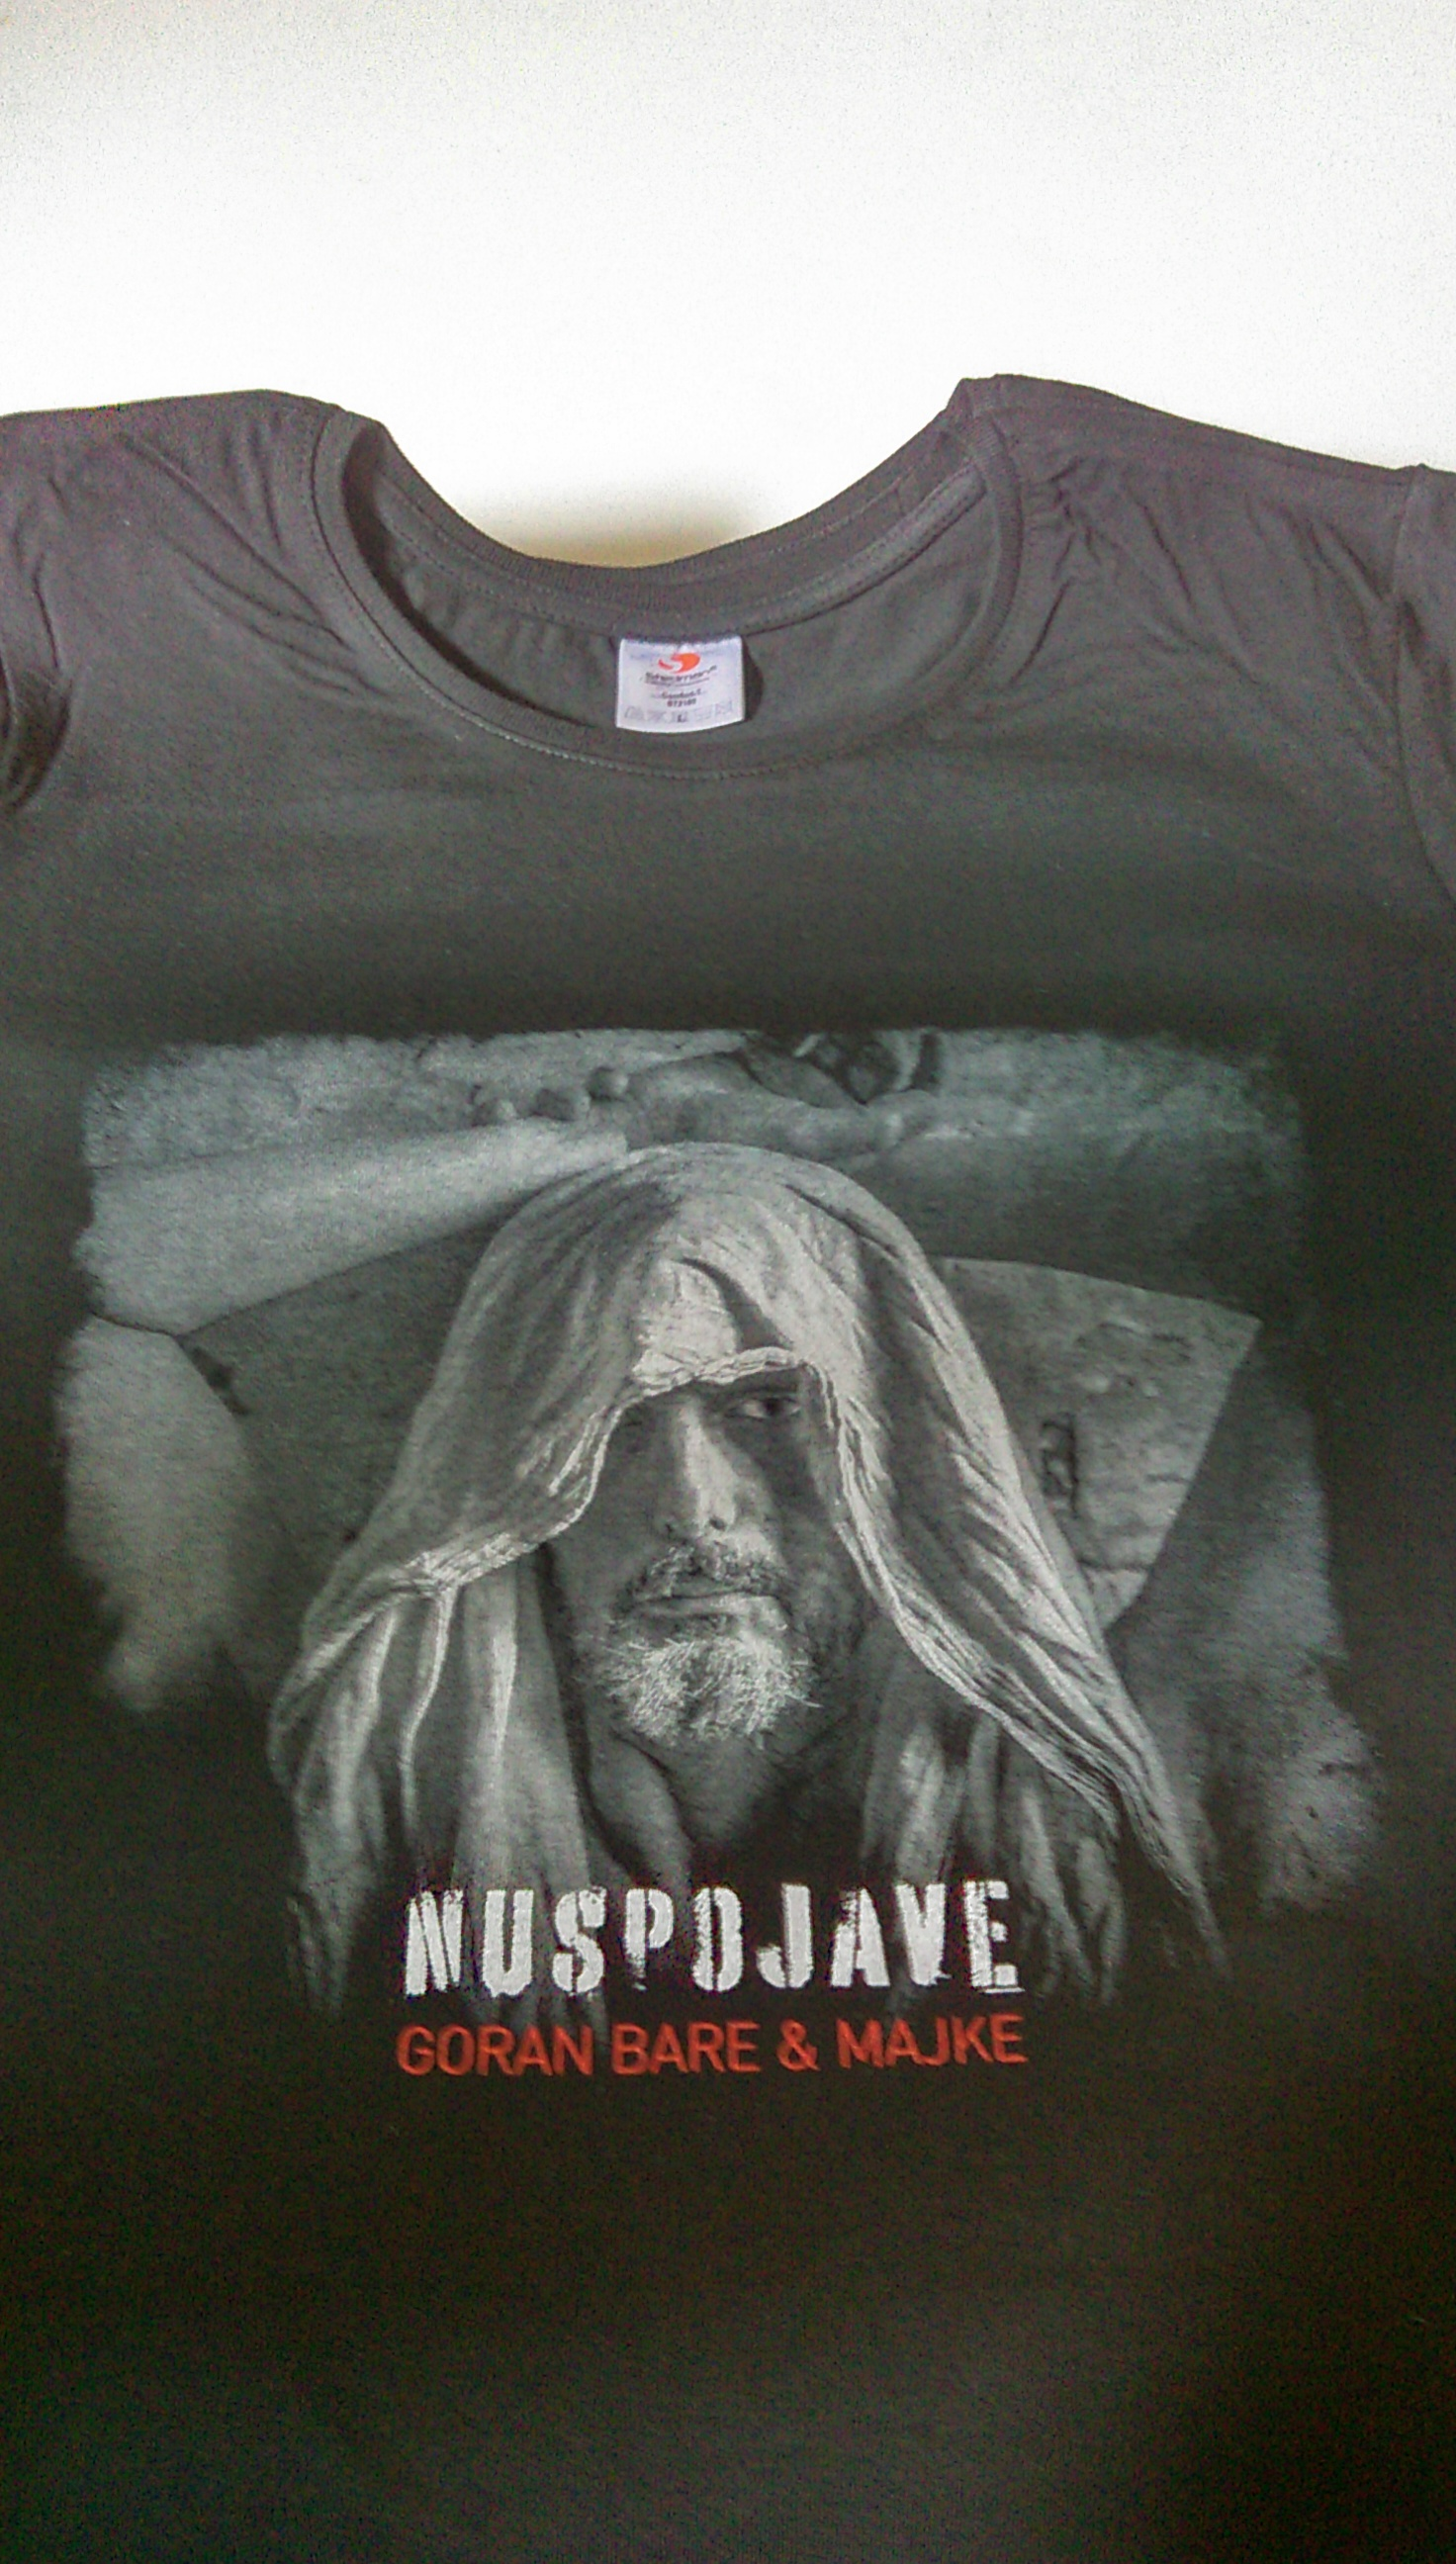 MUŠKI T-SHIRT (MEDIUM)